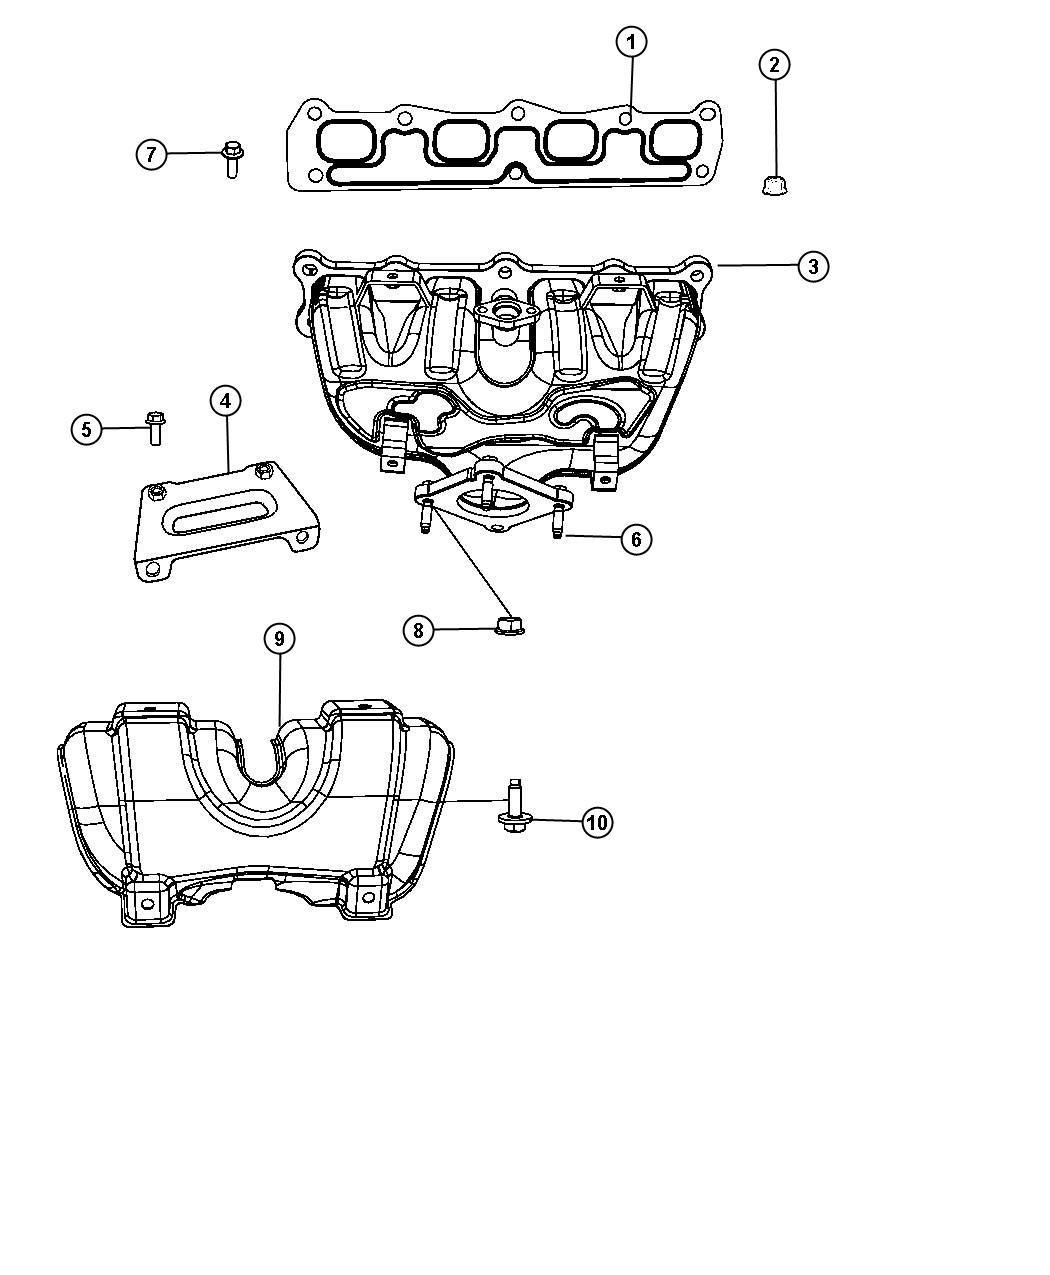 Jeep Compass Shield. Exhaust manifold. Upper. Edg, module